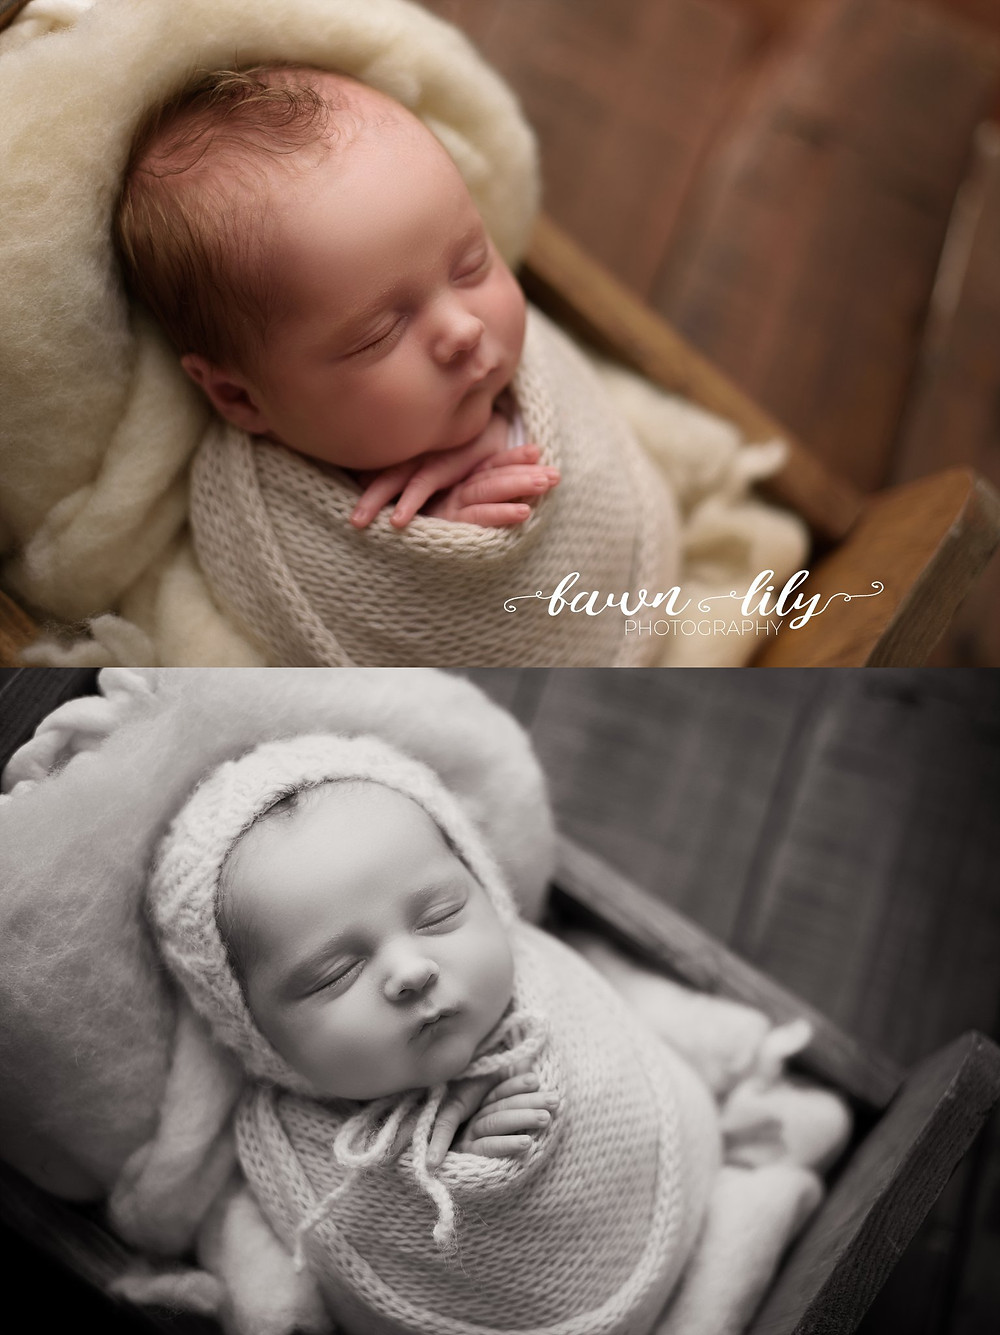 Fawn Lily Photography, Victoria BC Newborn Photographer